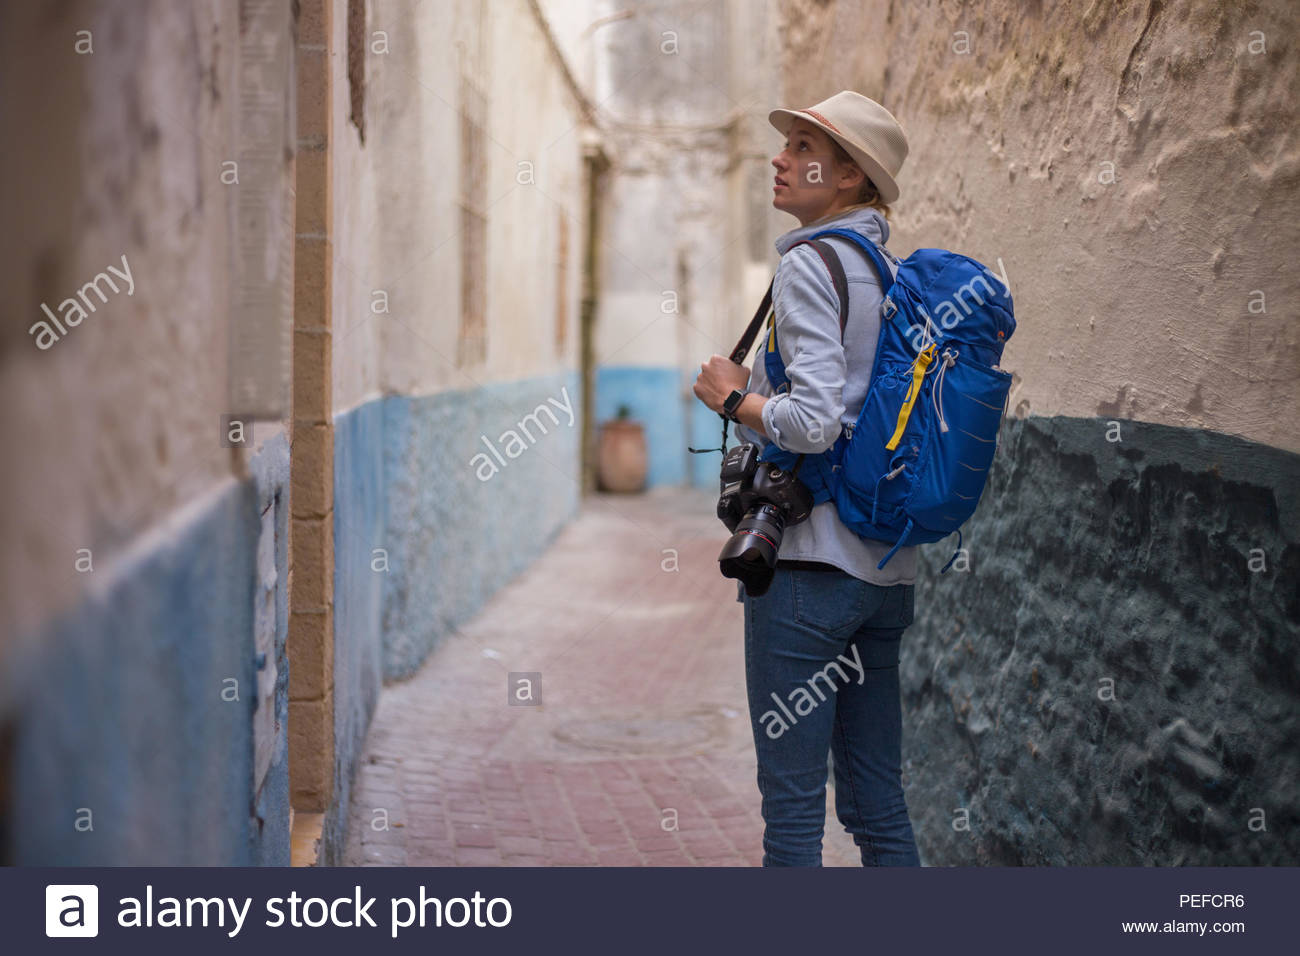 Young female tourist explores the houses in Essaouira, Morocco. Stock Photo